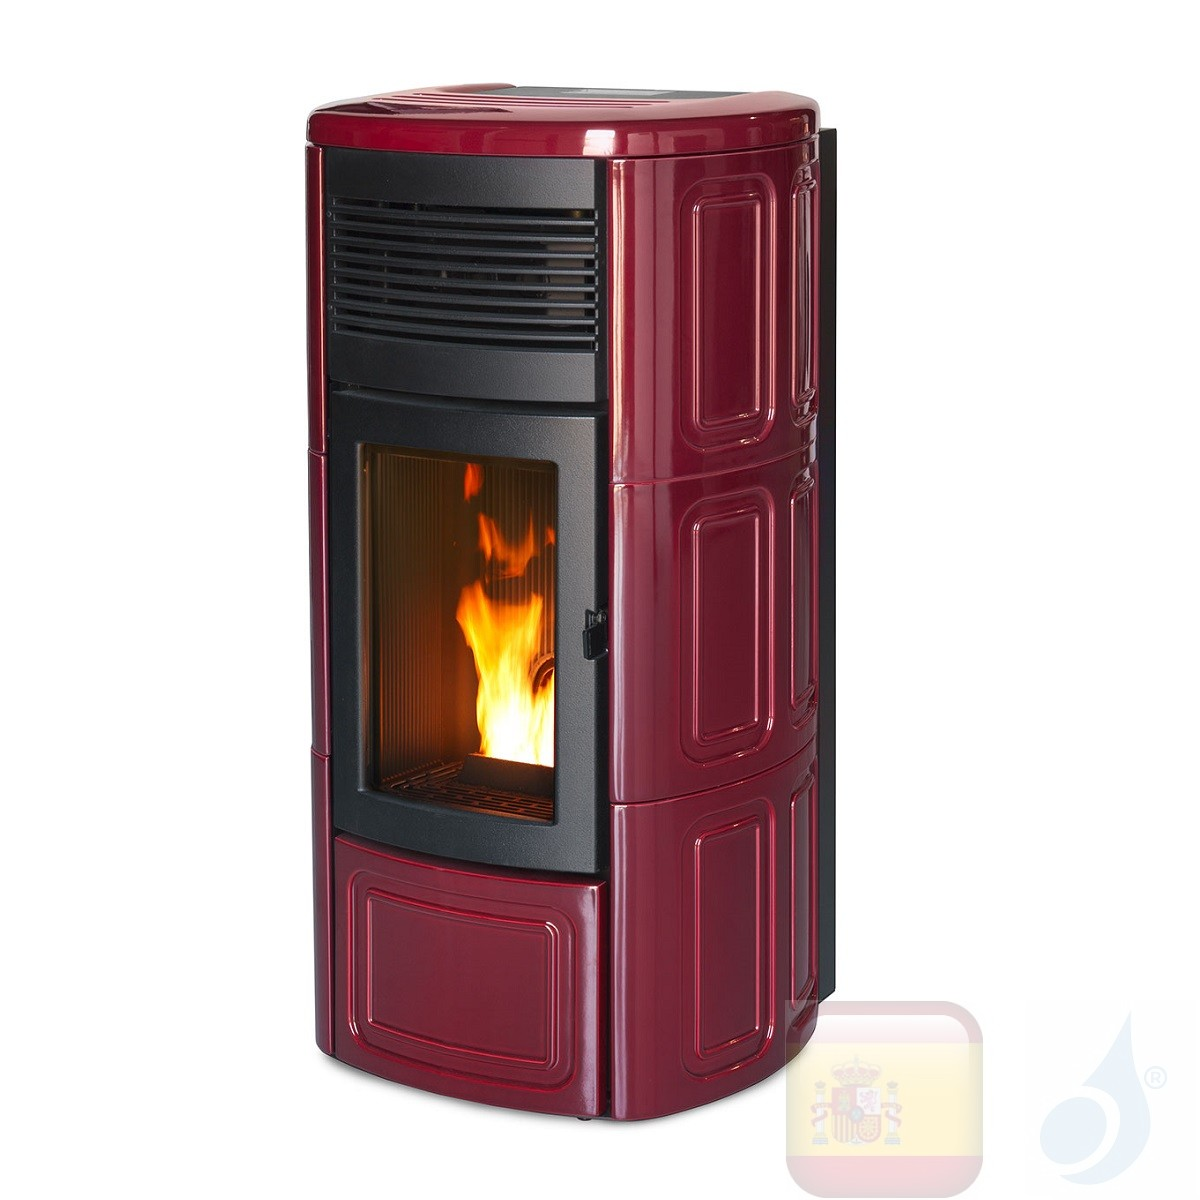 Estufa de pellets MCZ 11.9 kW Suite Comfort Air 12 UP! M1 Bordeaux